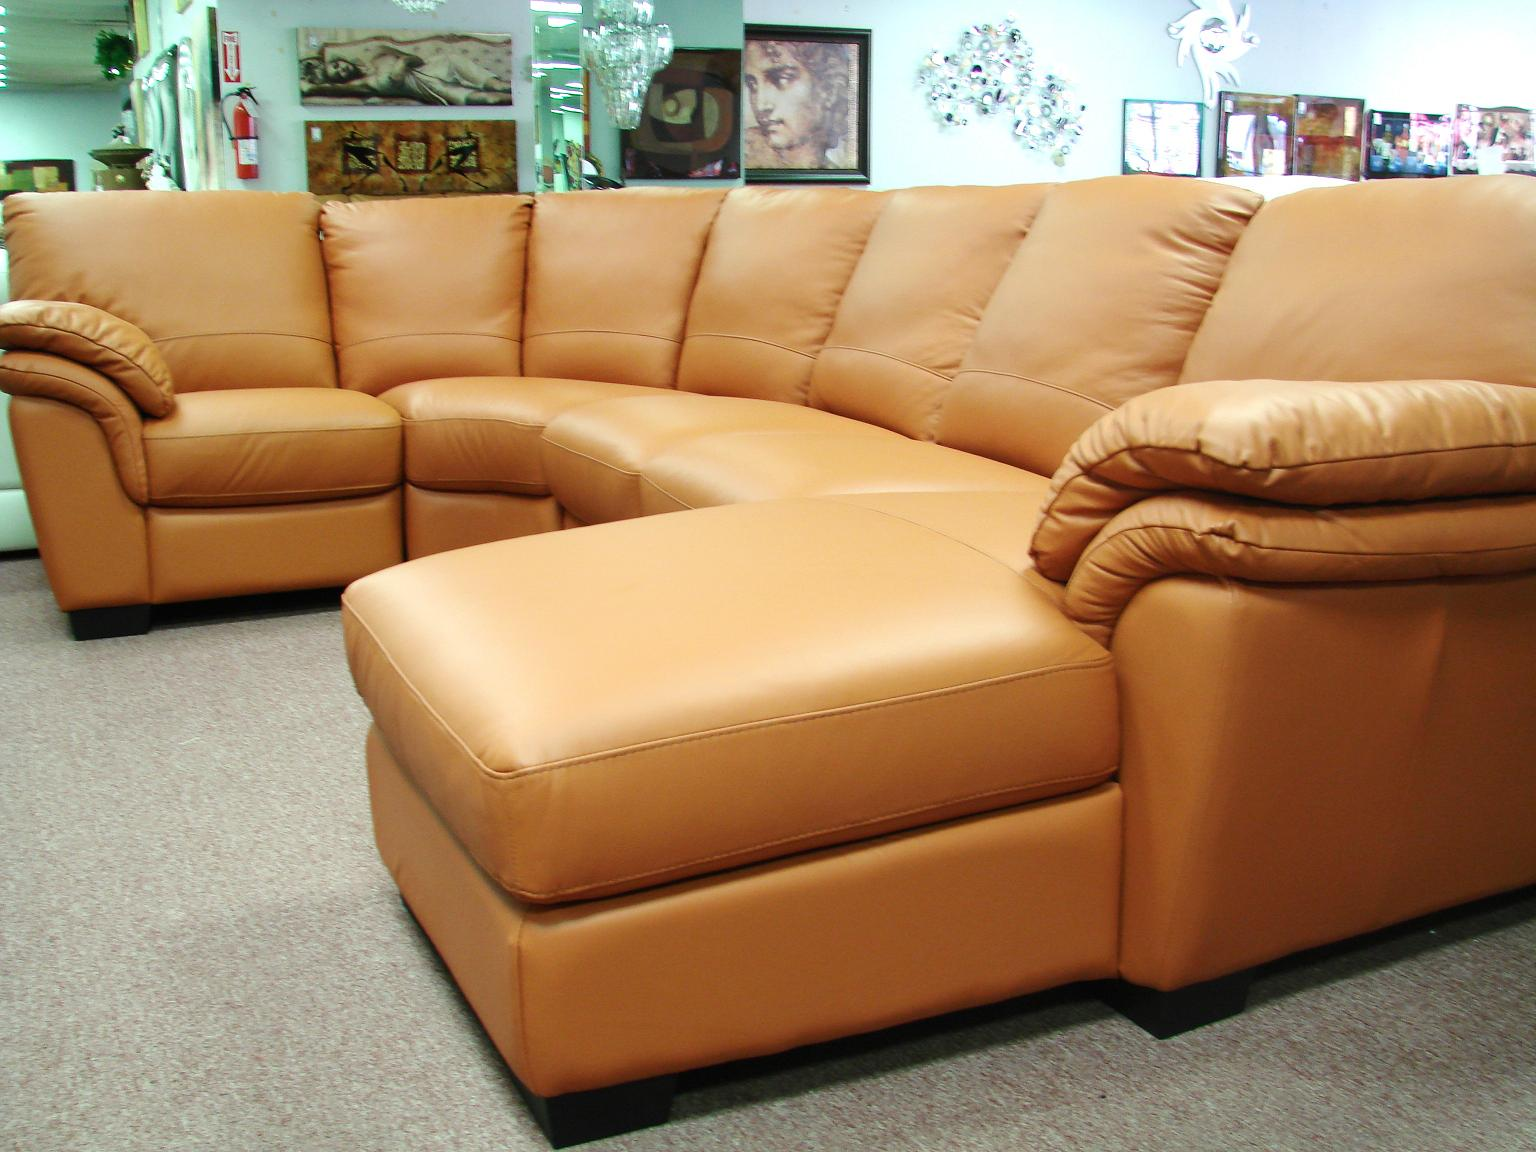 Italsofa Leather Sofa Price Image For